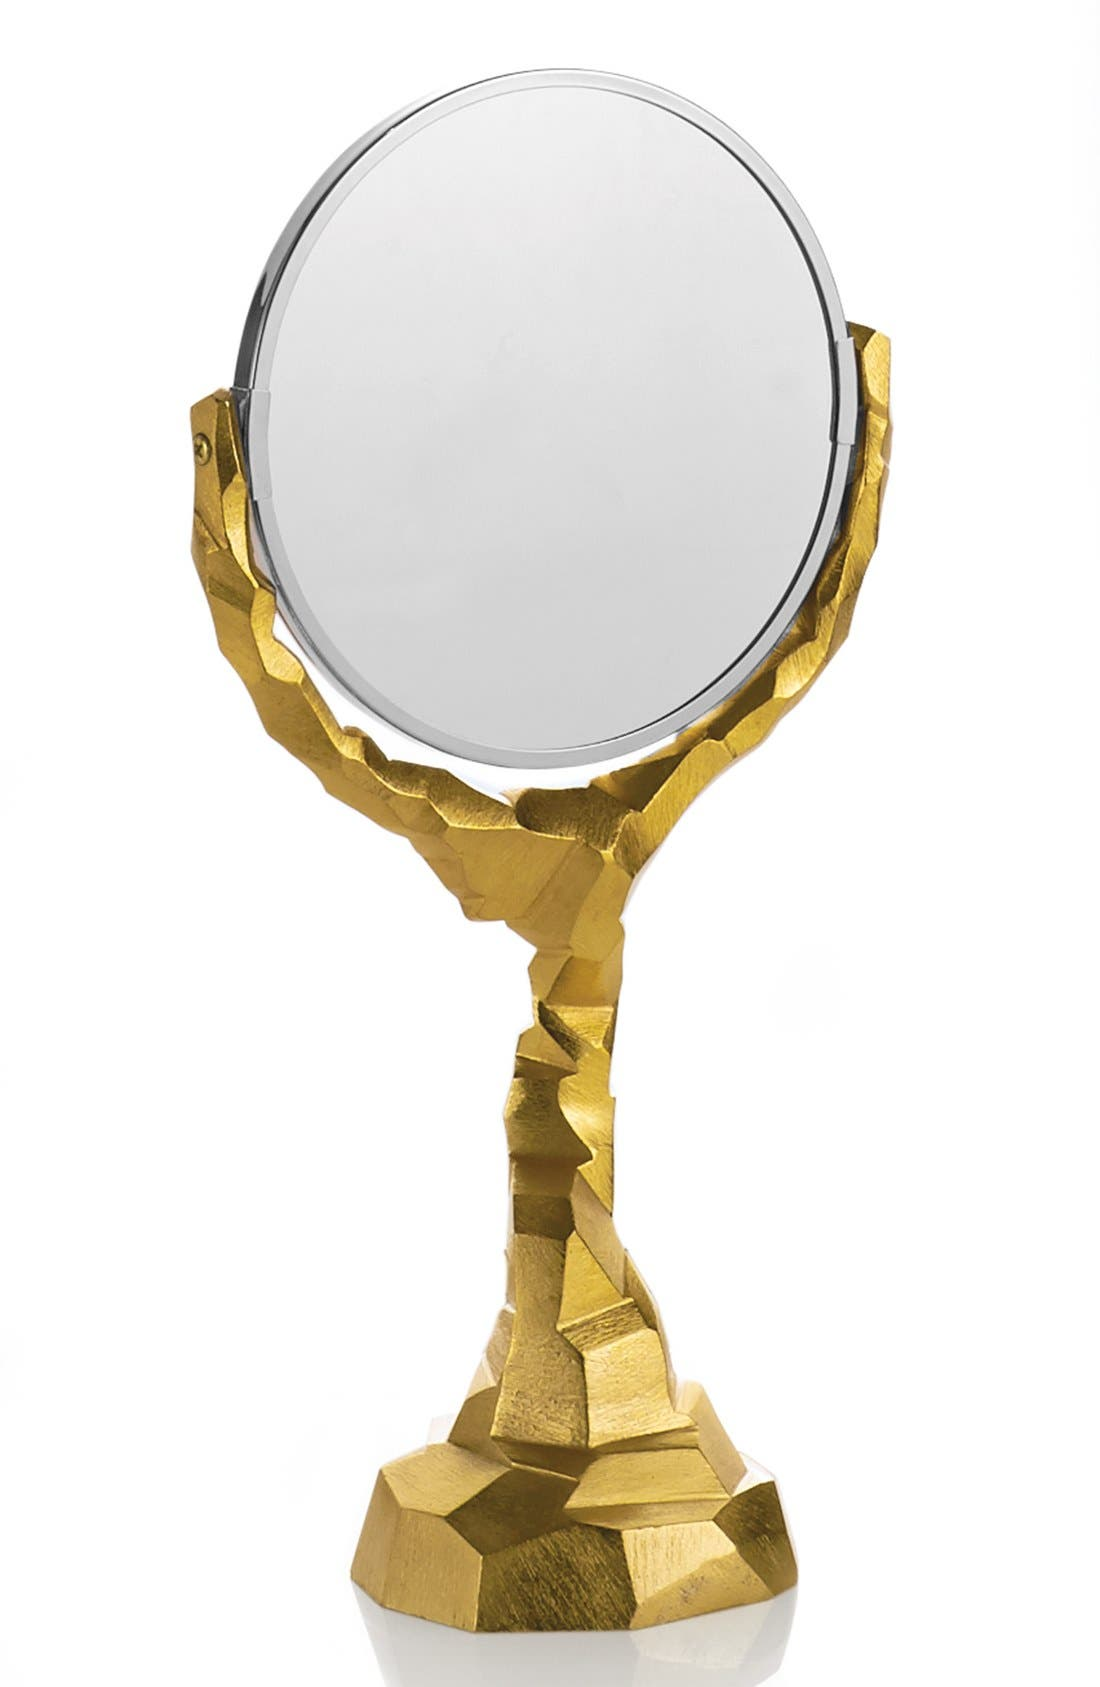 MICHAEL ARAM 'Rock' Countertop Vanity Mirror